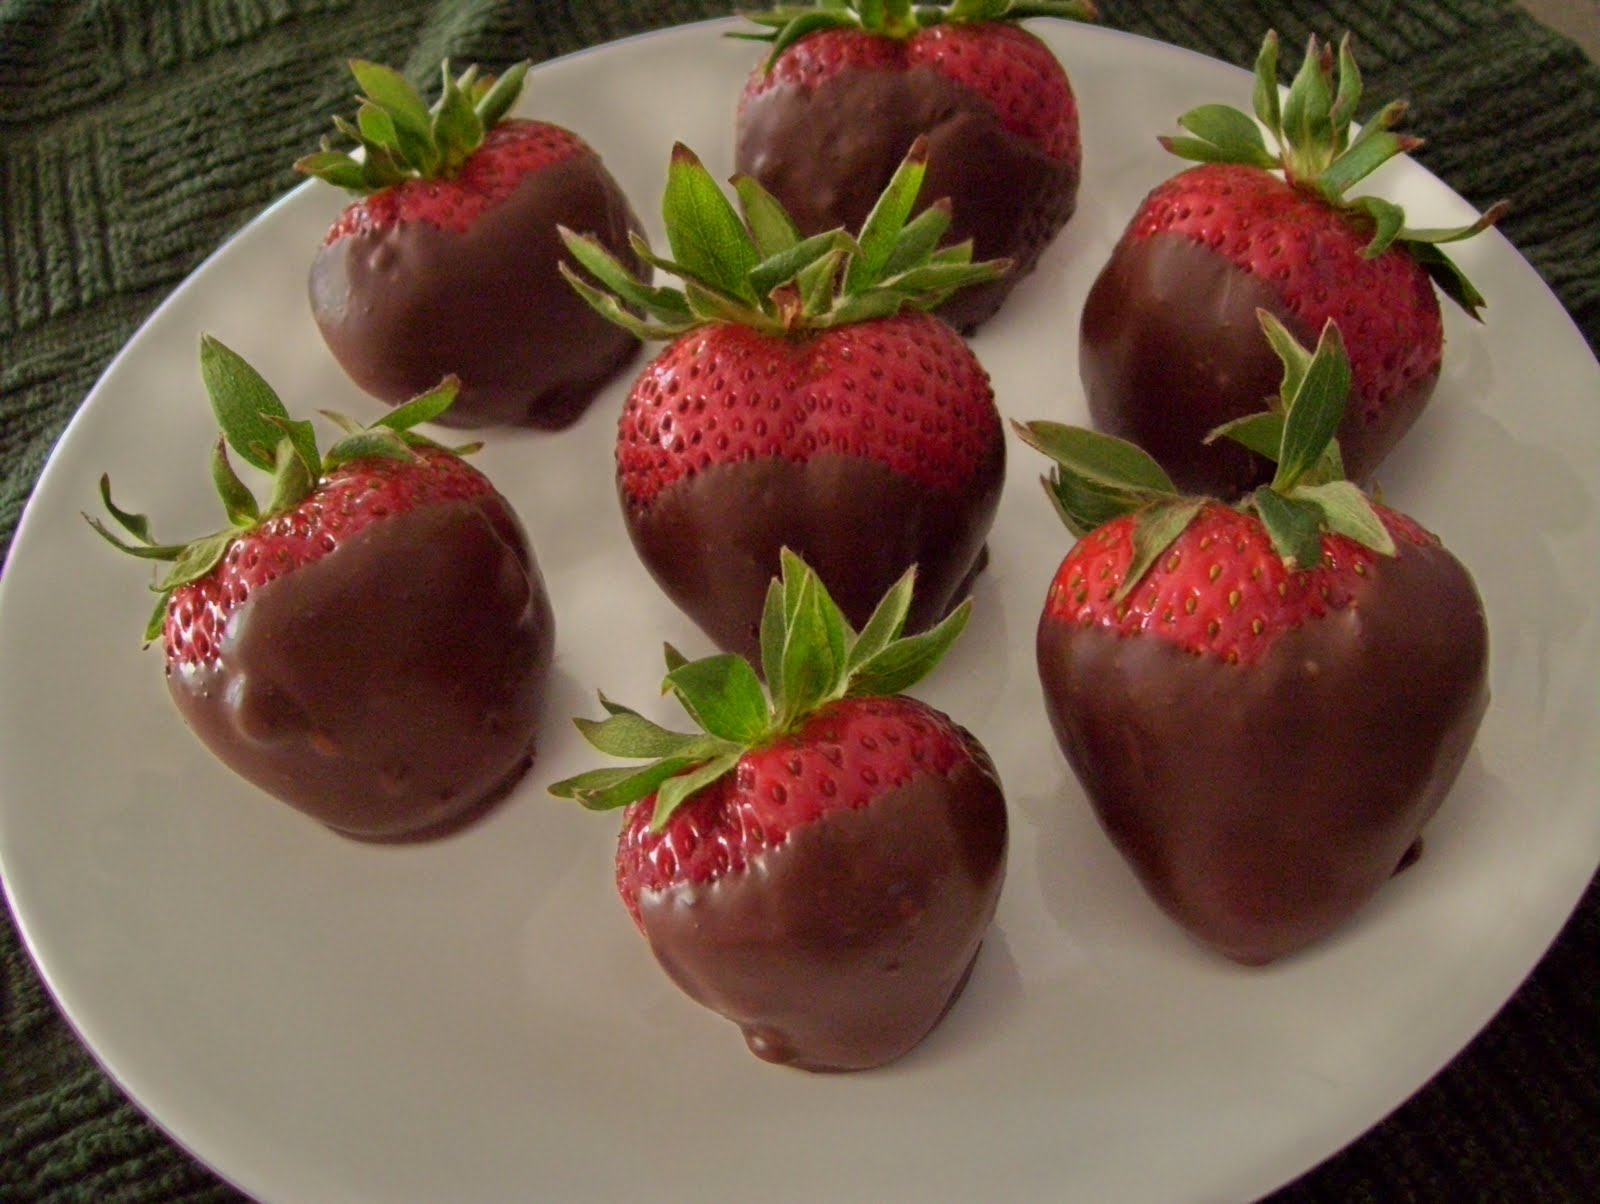 Food Memories: 33. Chocolate Covered Strawberries - Fun Food